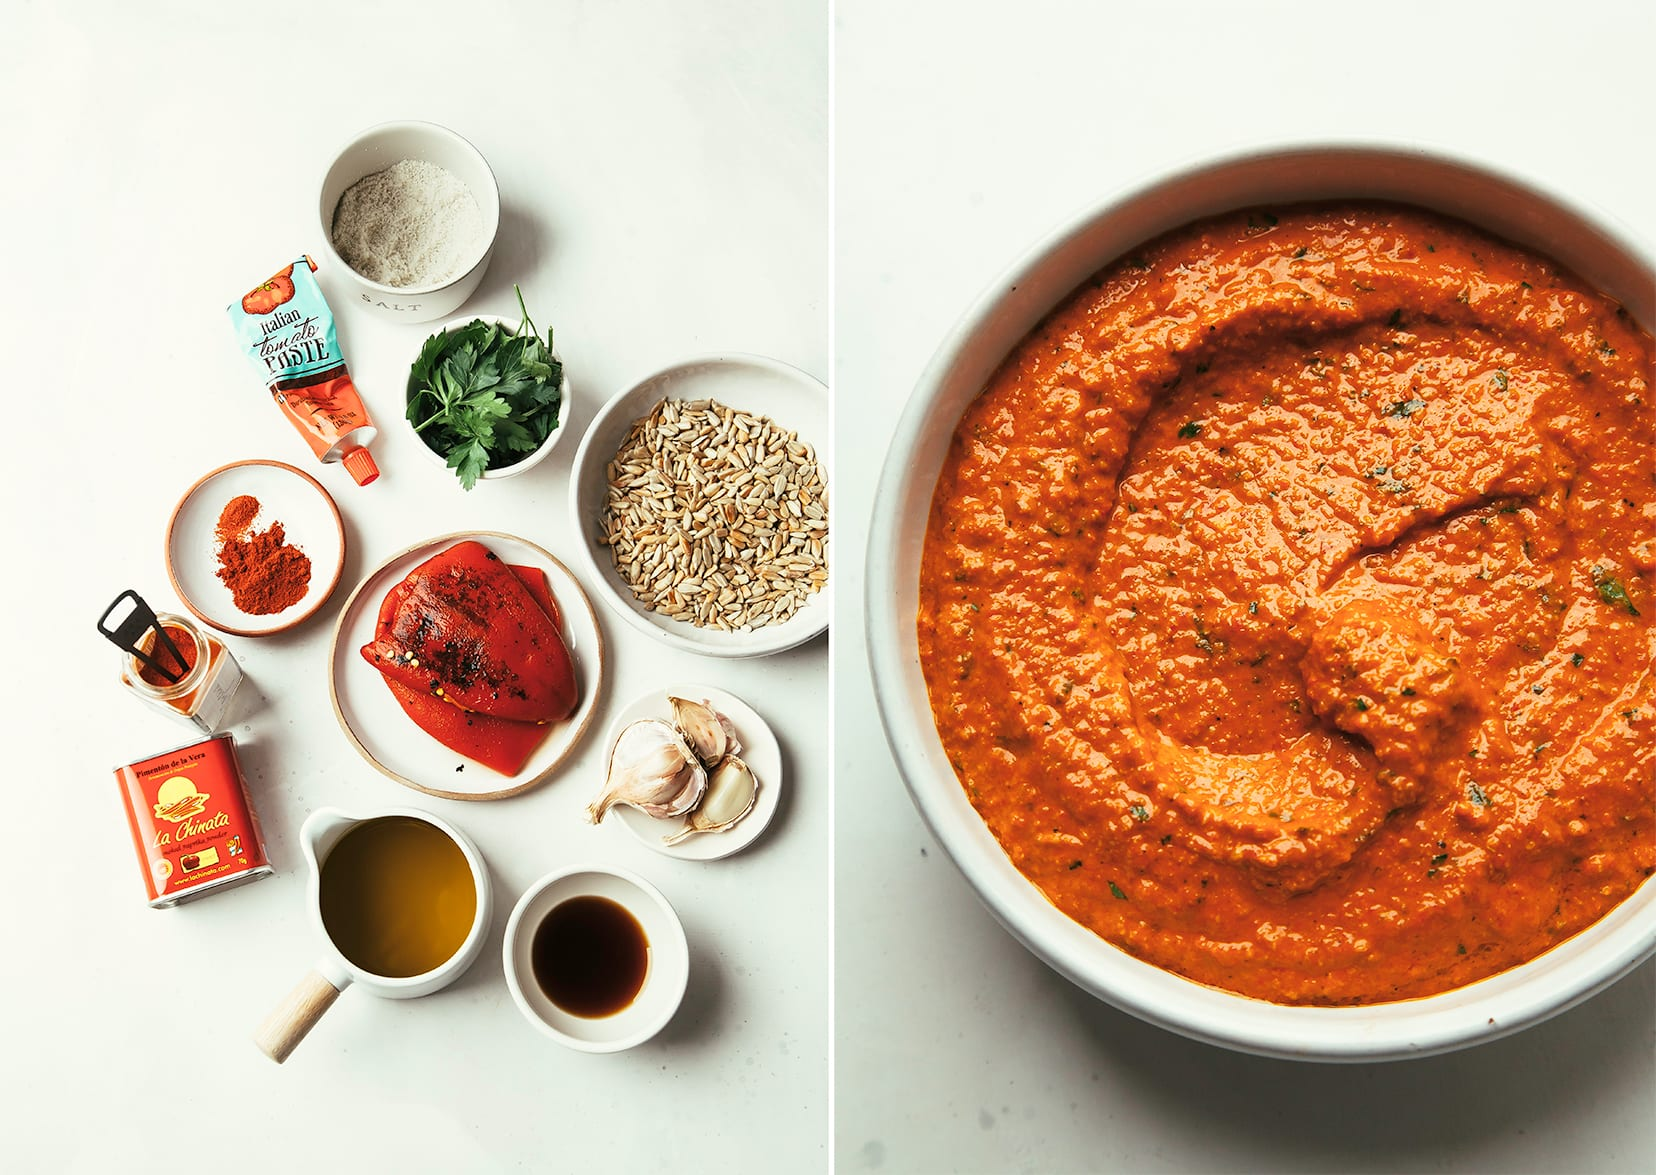 Two images show the ingredients for romesco sauce and also the completed, smooth and light red romesco sauce in a bowl.